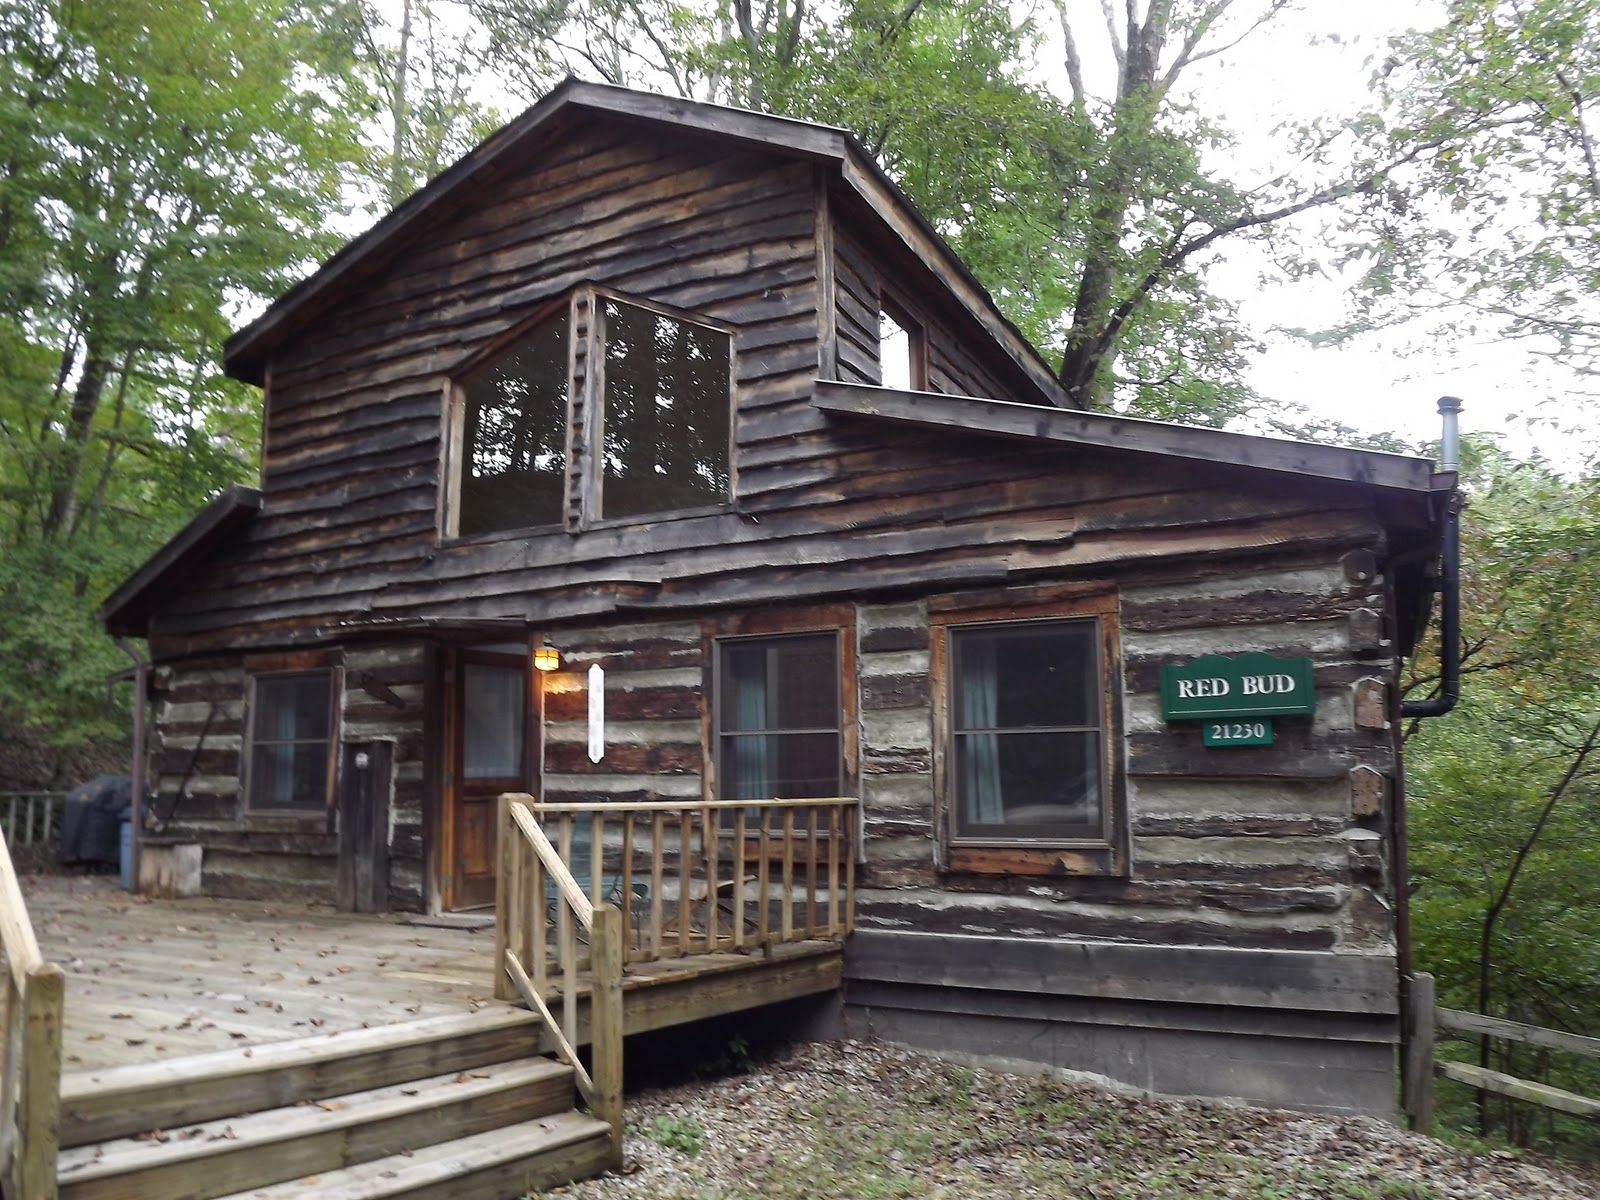 queen cabin comfortably a in the with hot heaven sized view cozy cabins natural destinations can tubs sleeping is wears retreats six united valley guests brothers one accommodation s log two choose bath bedroom us louisiana cove of states from heavens east